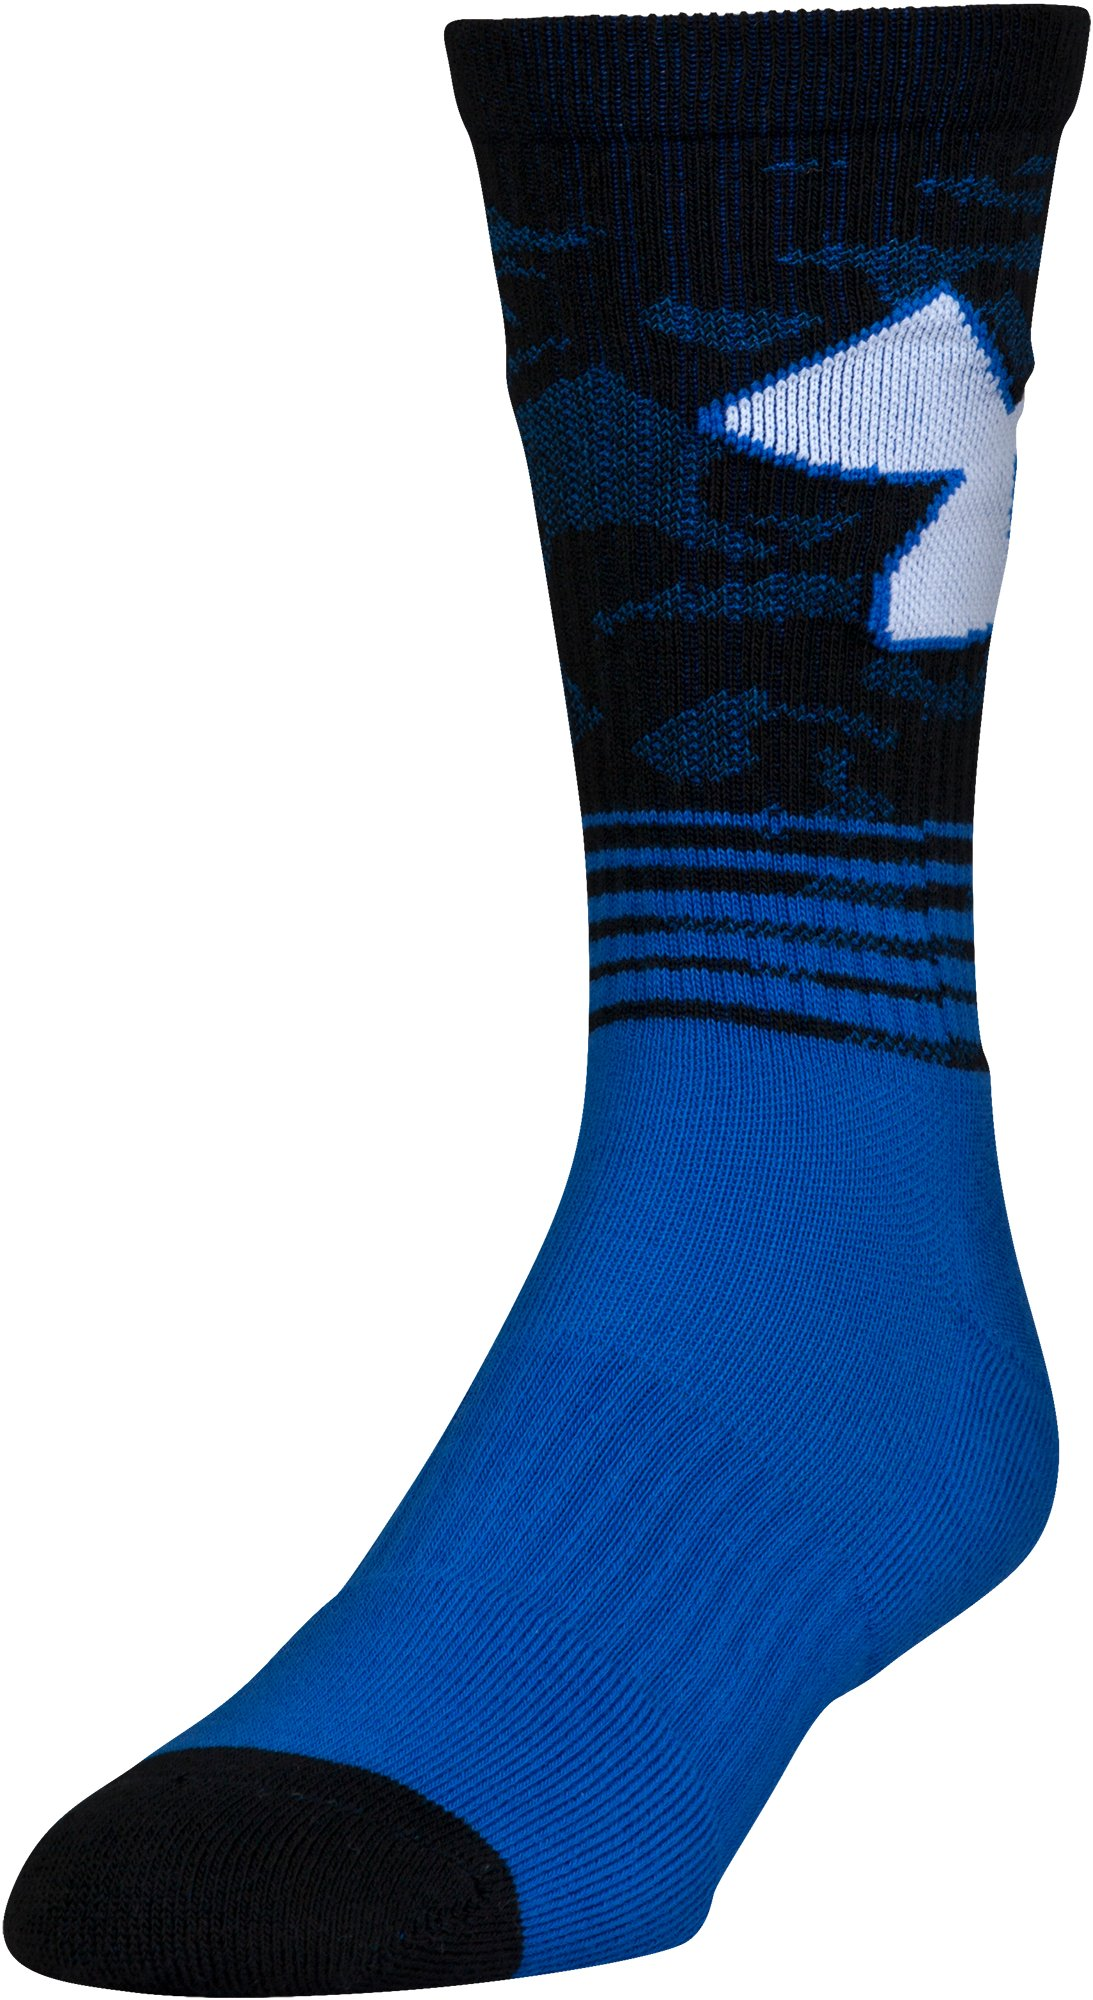 Boys' SC30 Phenom 2.0 Crew Socks – 3-Pack, Assorted